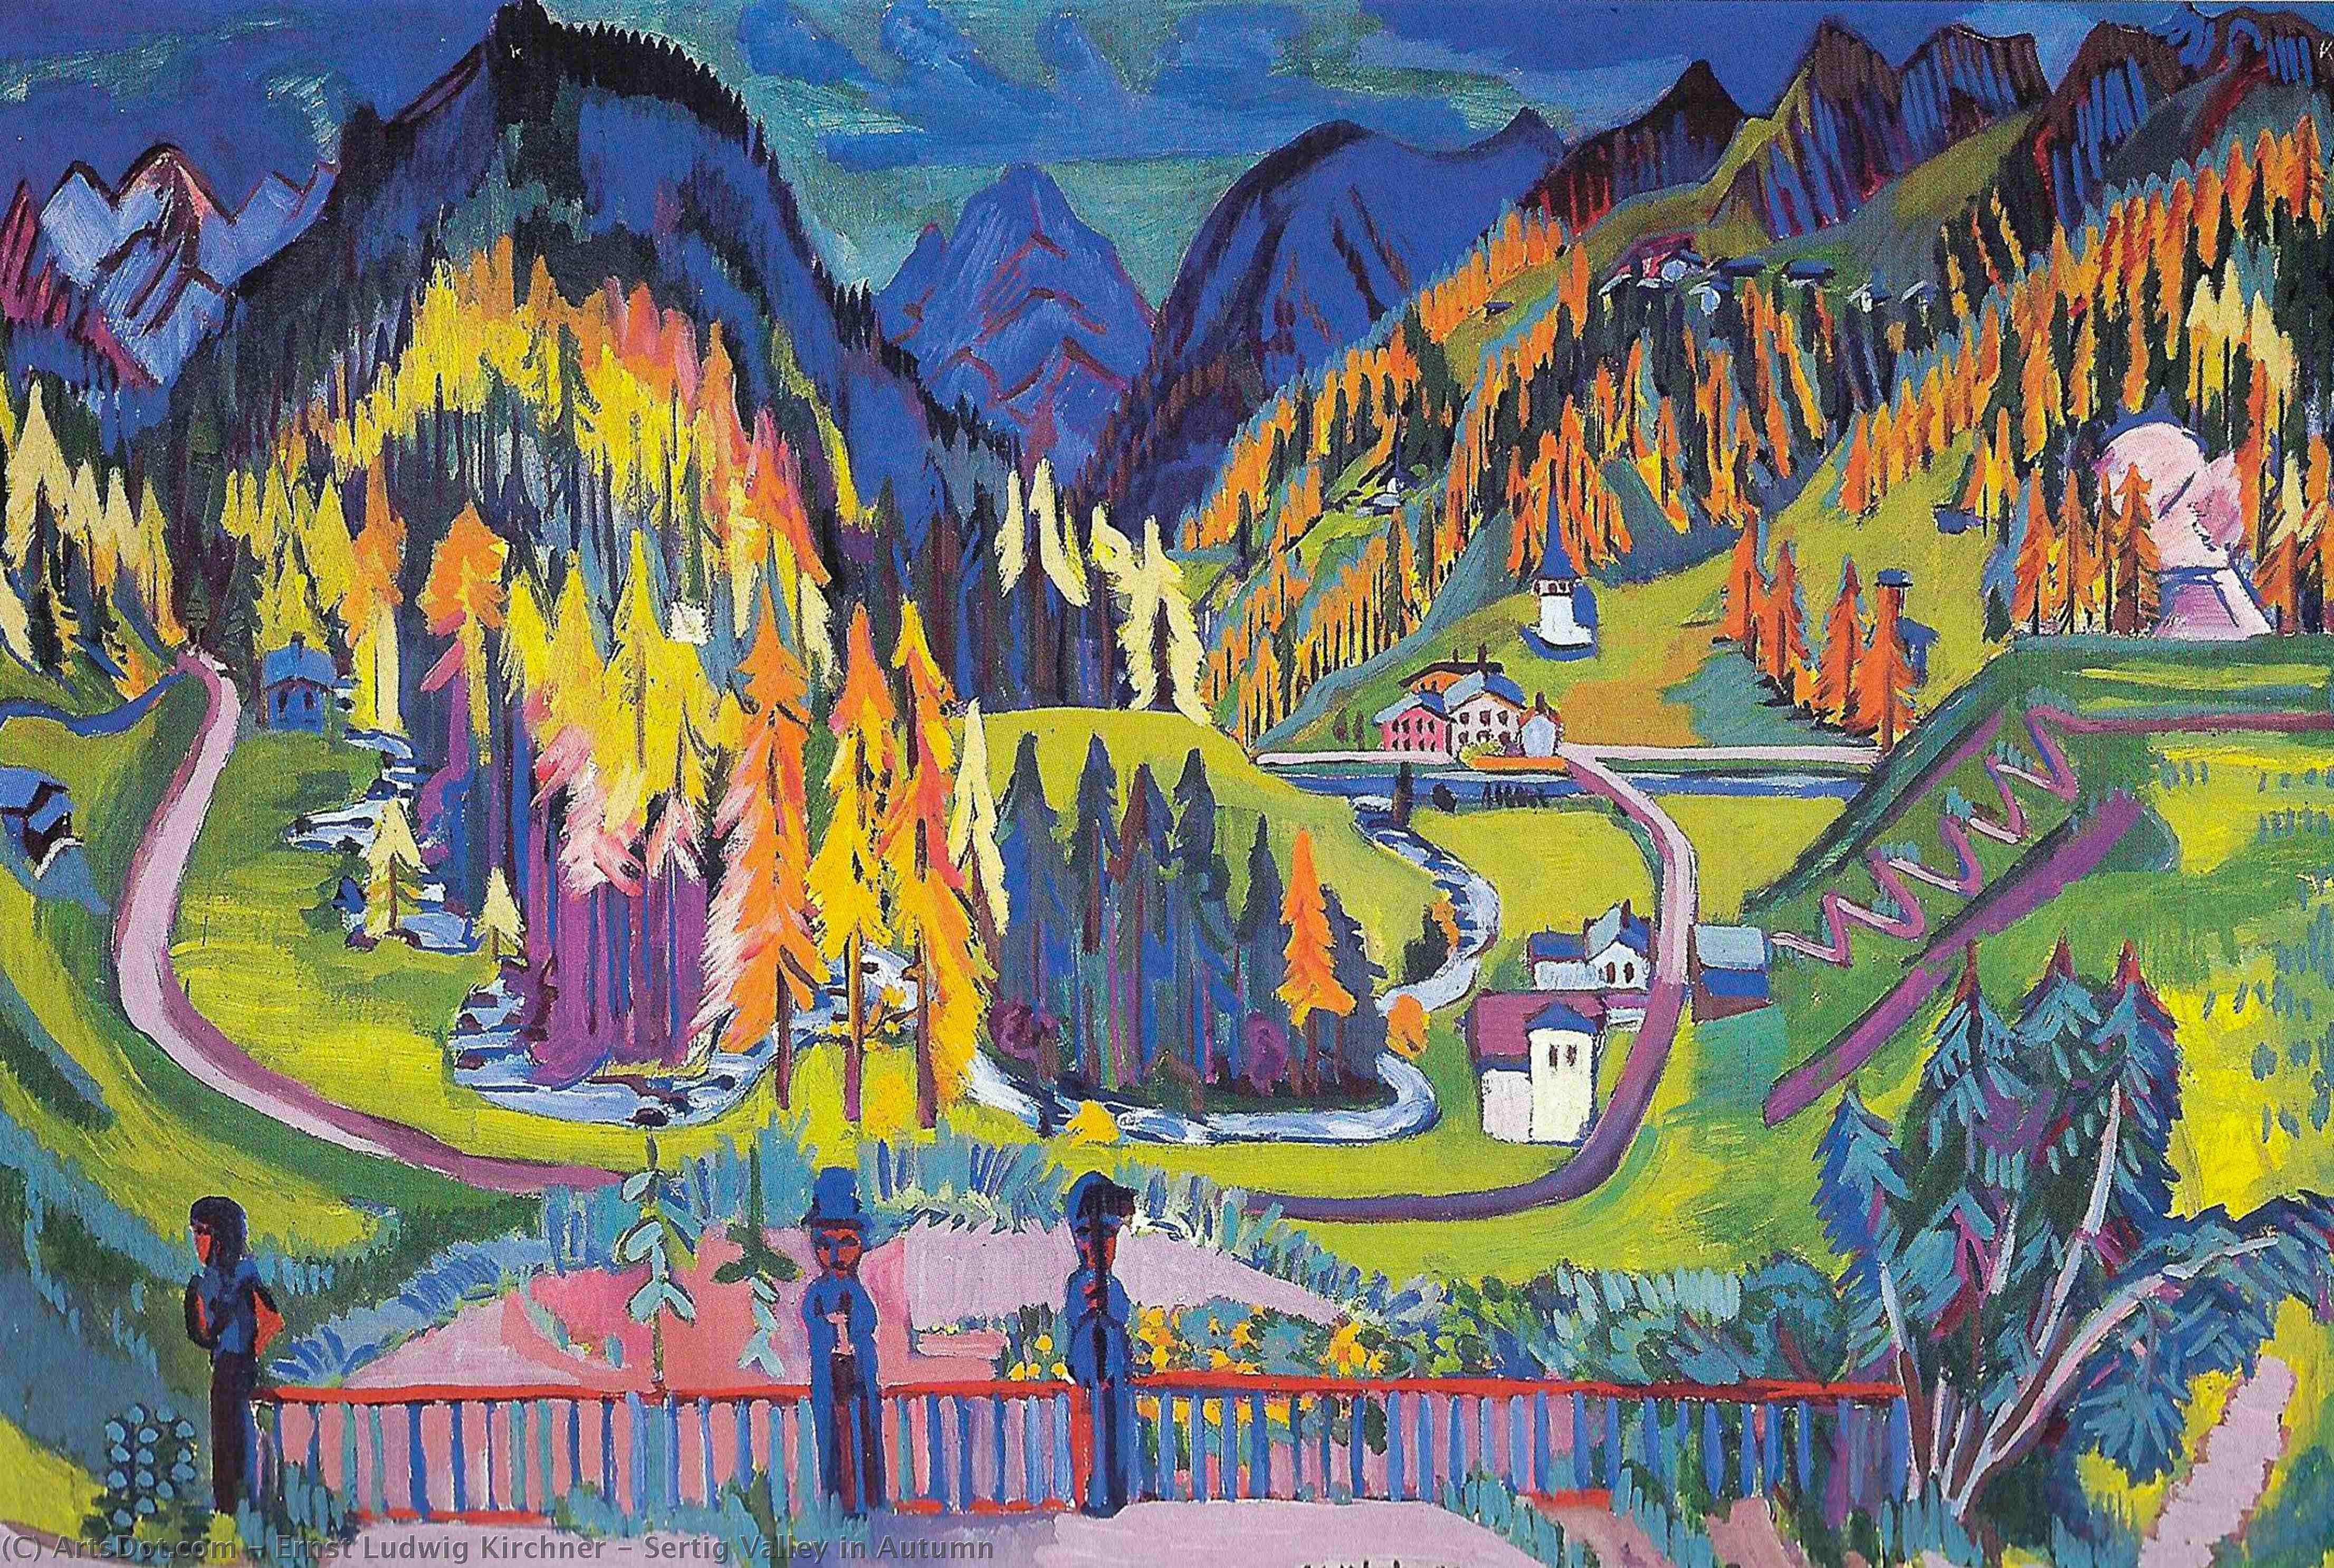 Wikioo.org - The Encyclopedia of Fine Arts - Painting, Artwork by Ernst Ludwig Kirchner - Sertig Valley in Autumn